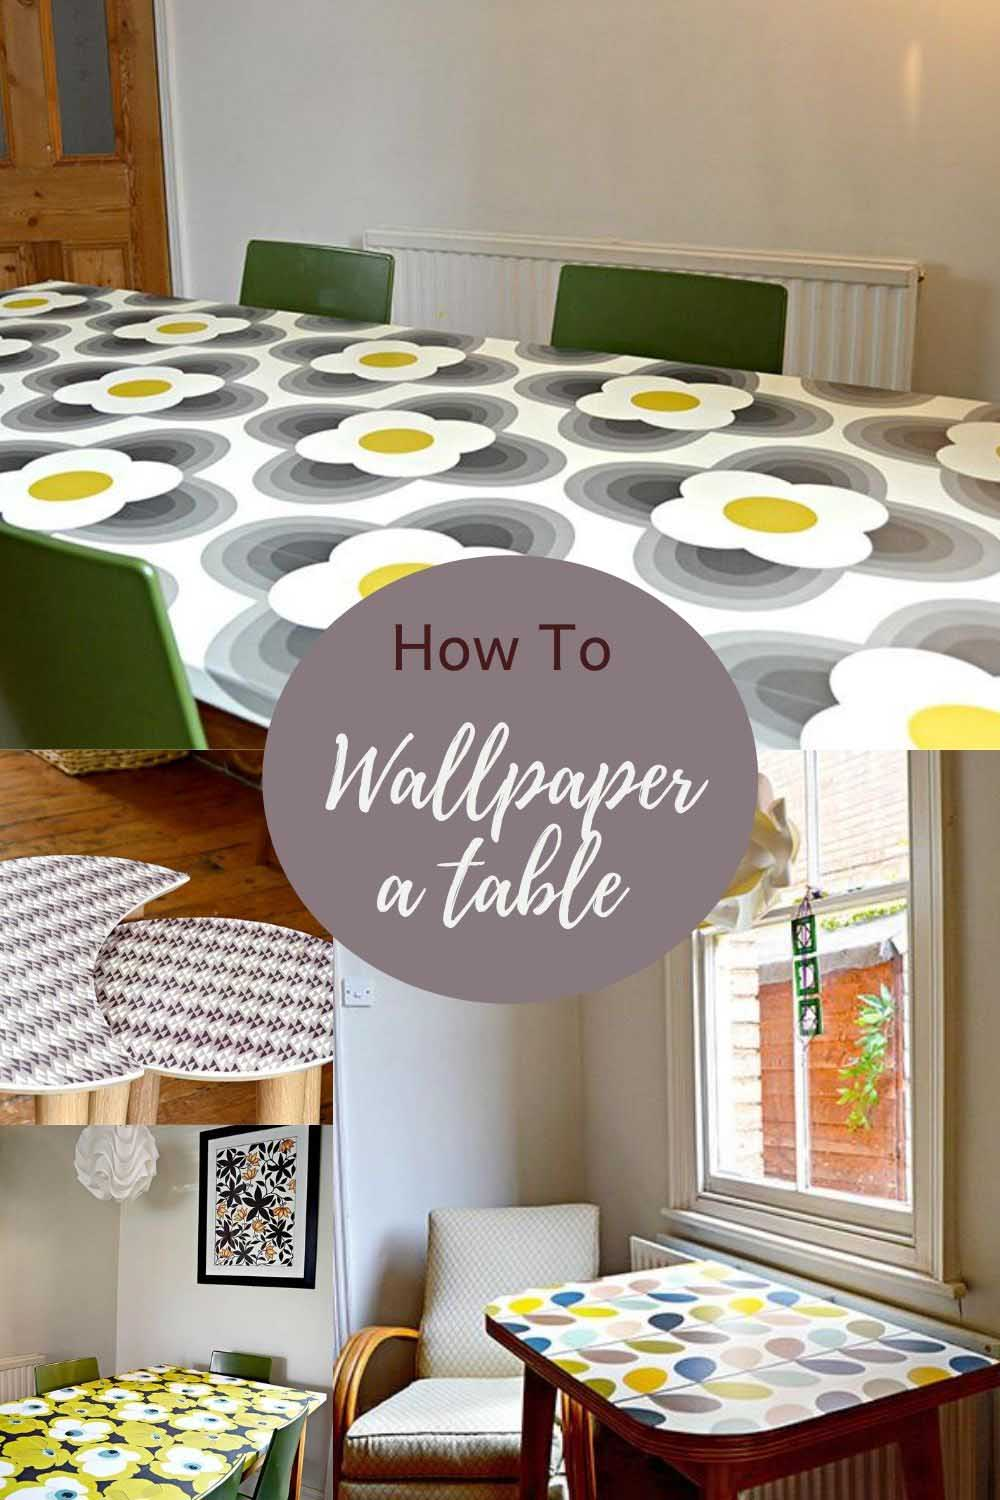 How to decoupage tabletop with wallpaper